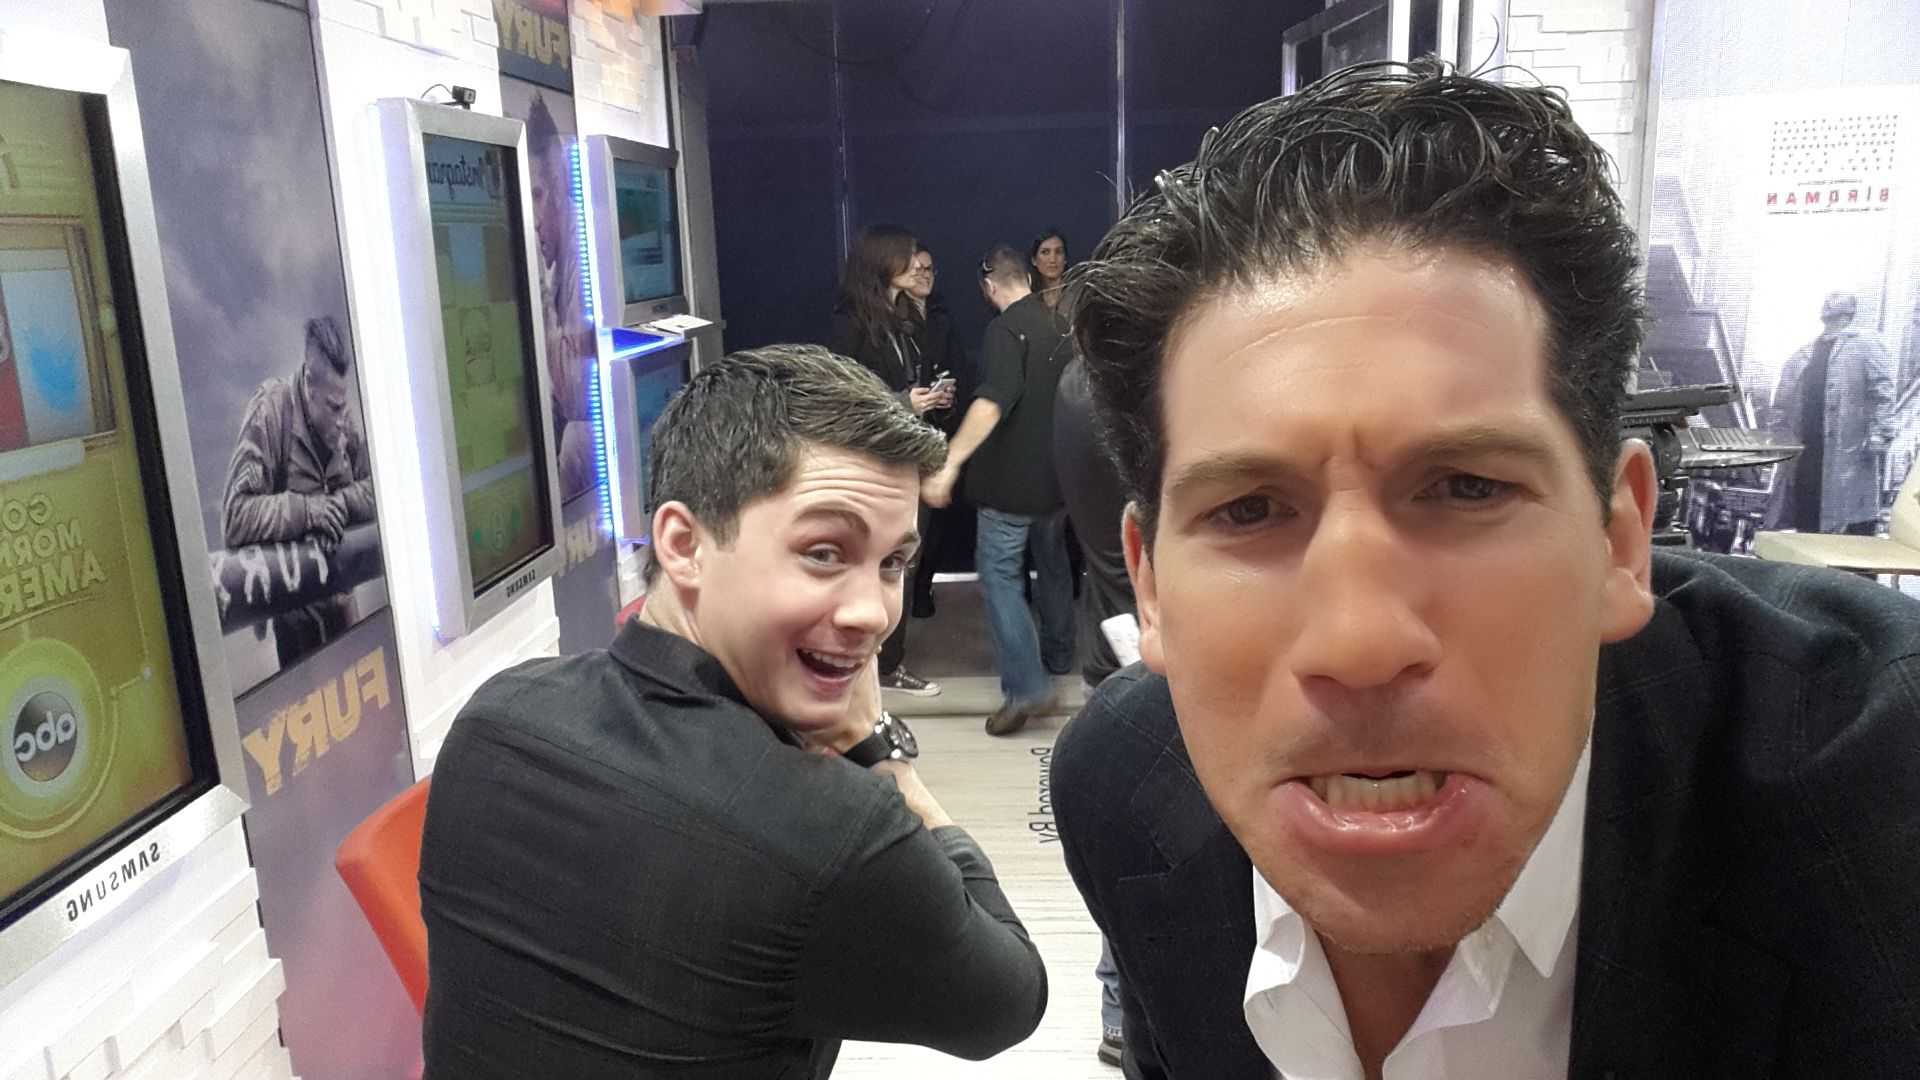 some fun in socialsquare fury stars logan lerman jon some fun in fury stars logan lerman jon bernthal watch the full interview